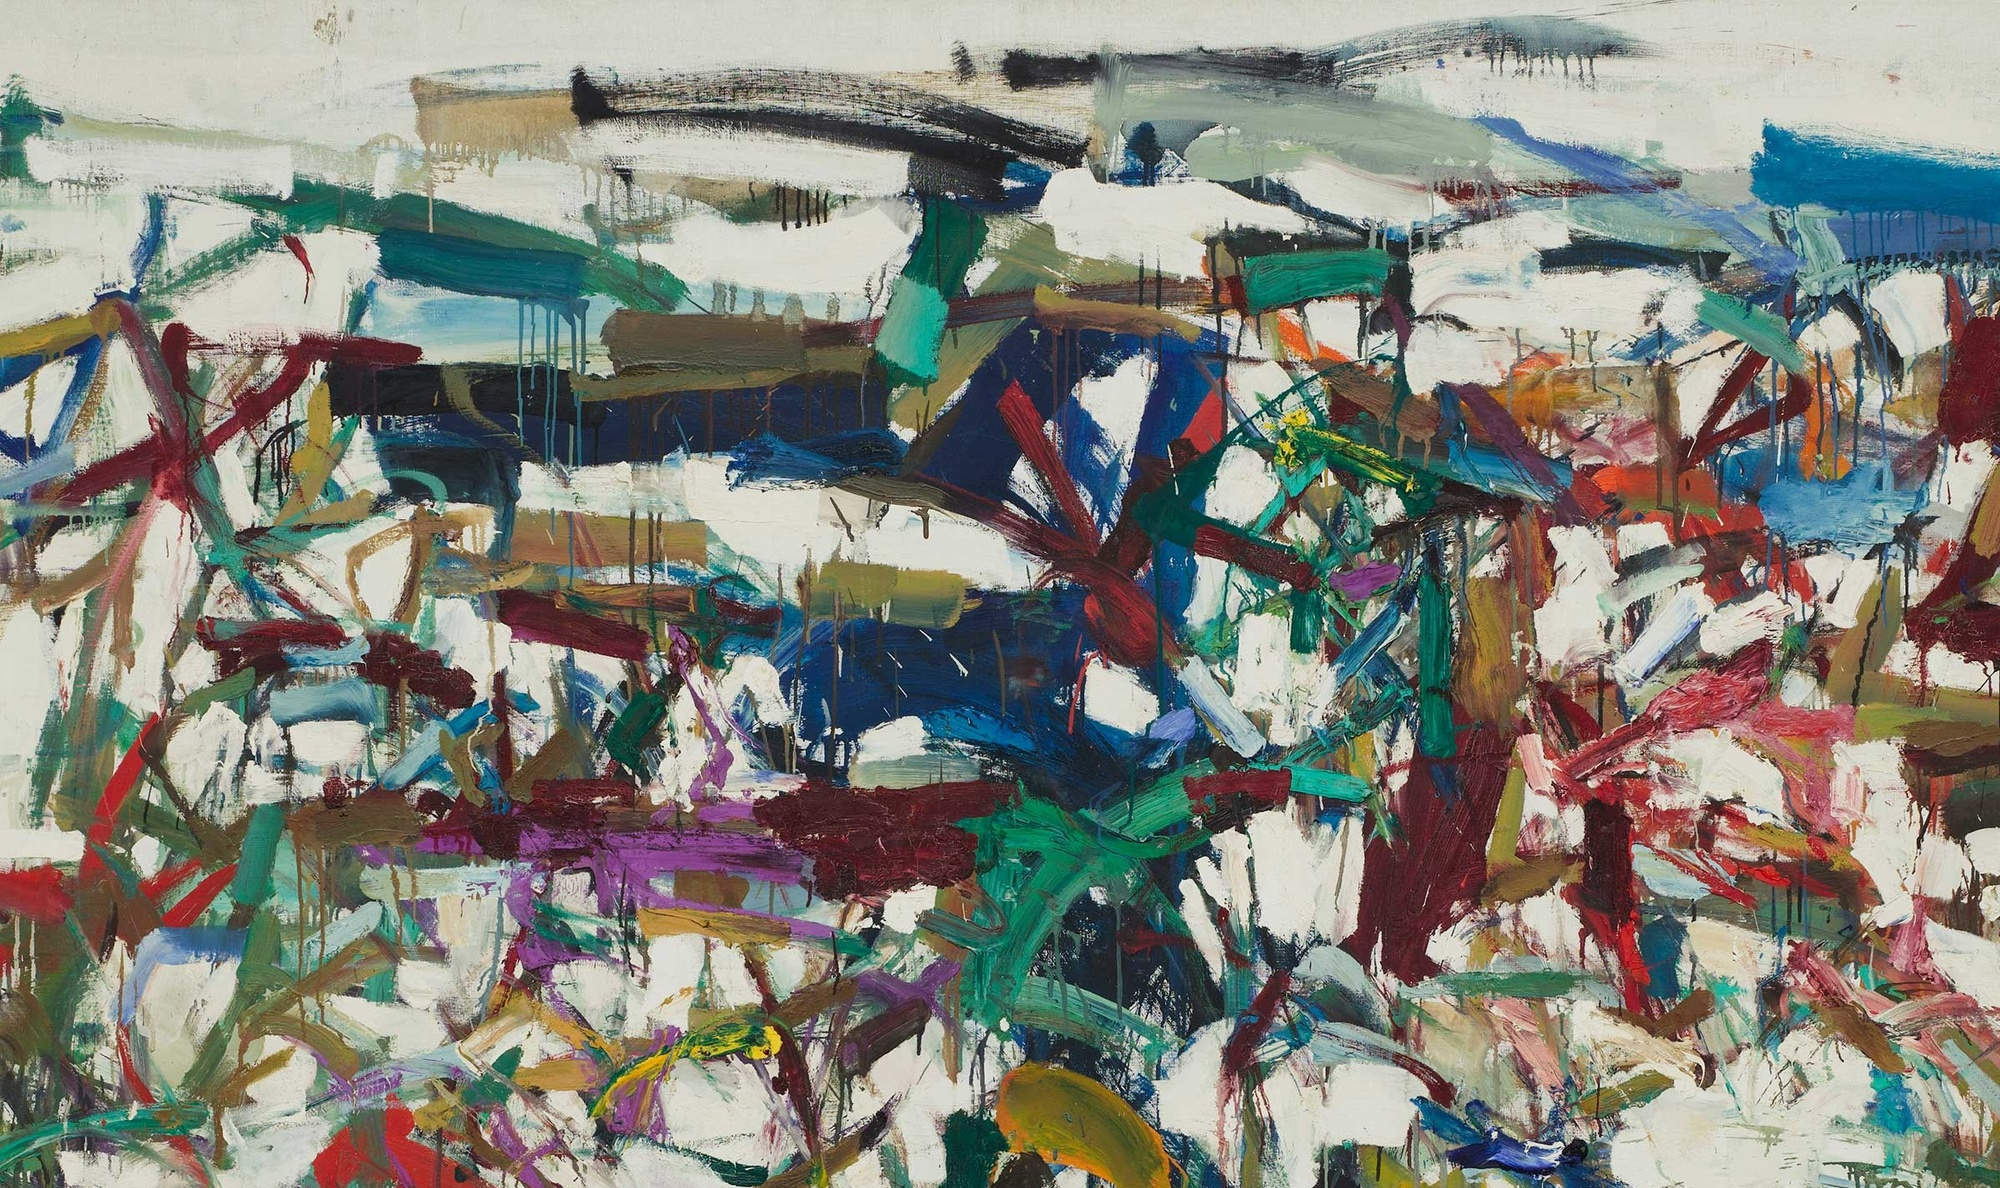 joan mitchell making space 1 - slider, culture - New York Art Exhibits - New York, Art - New York Art Exhibits